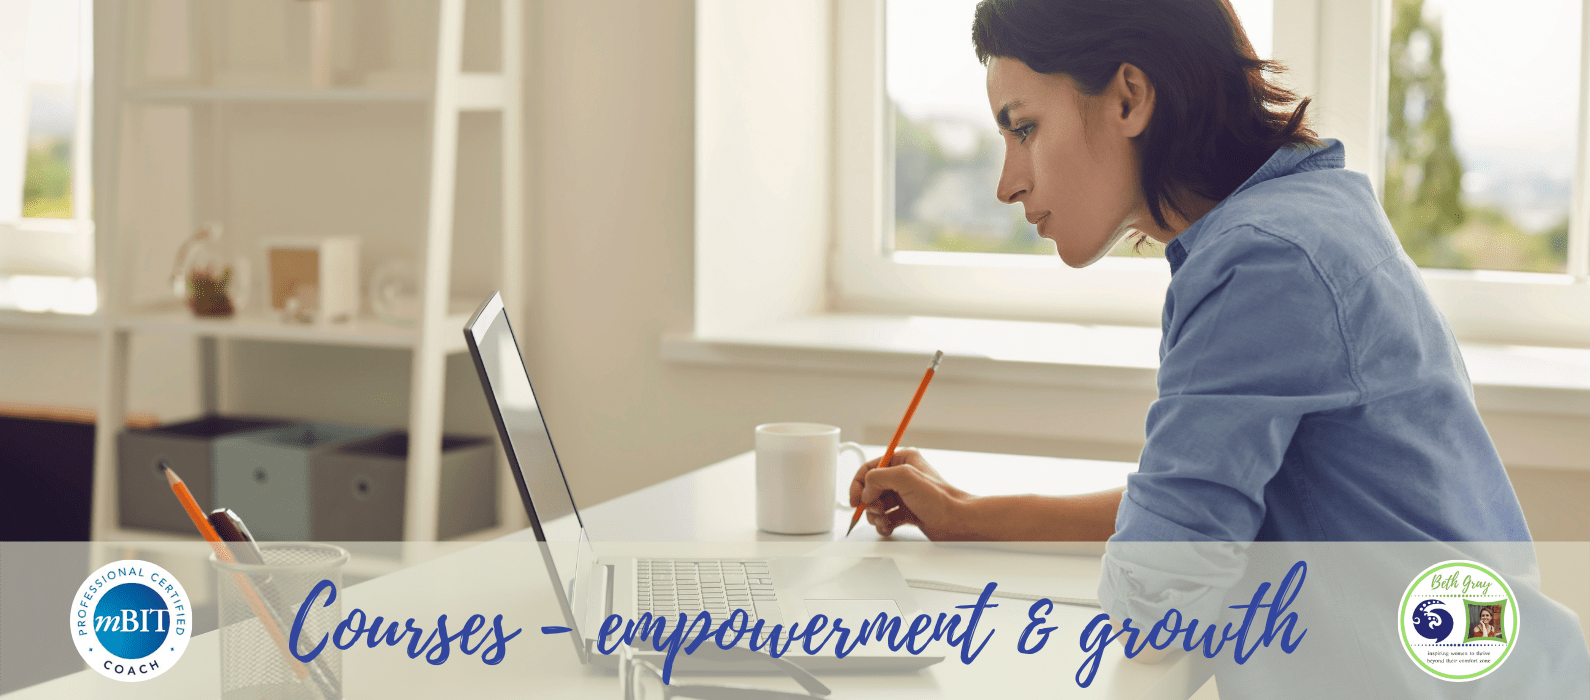 courses, online course, empowerment, growth, transformation, change